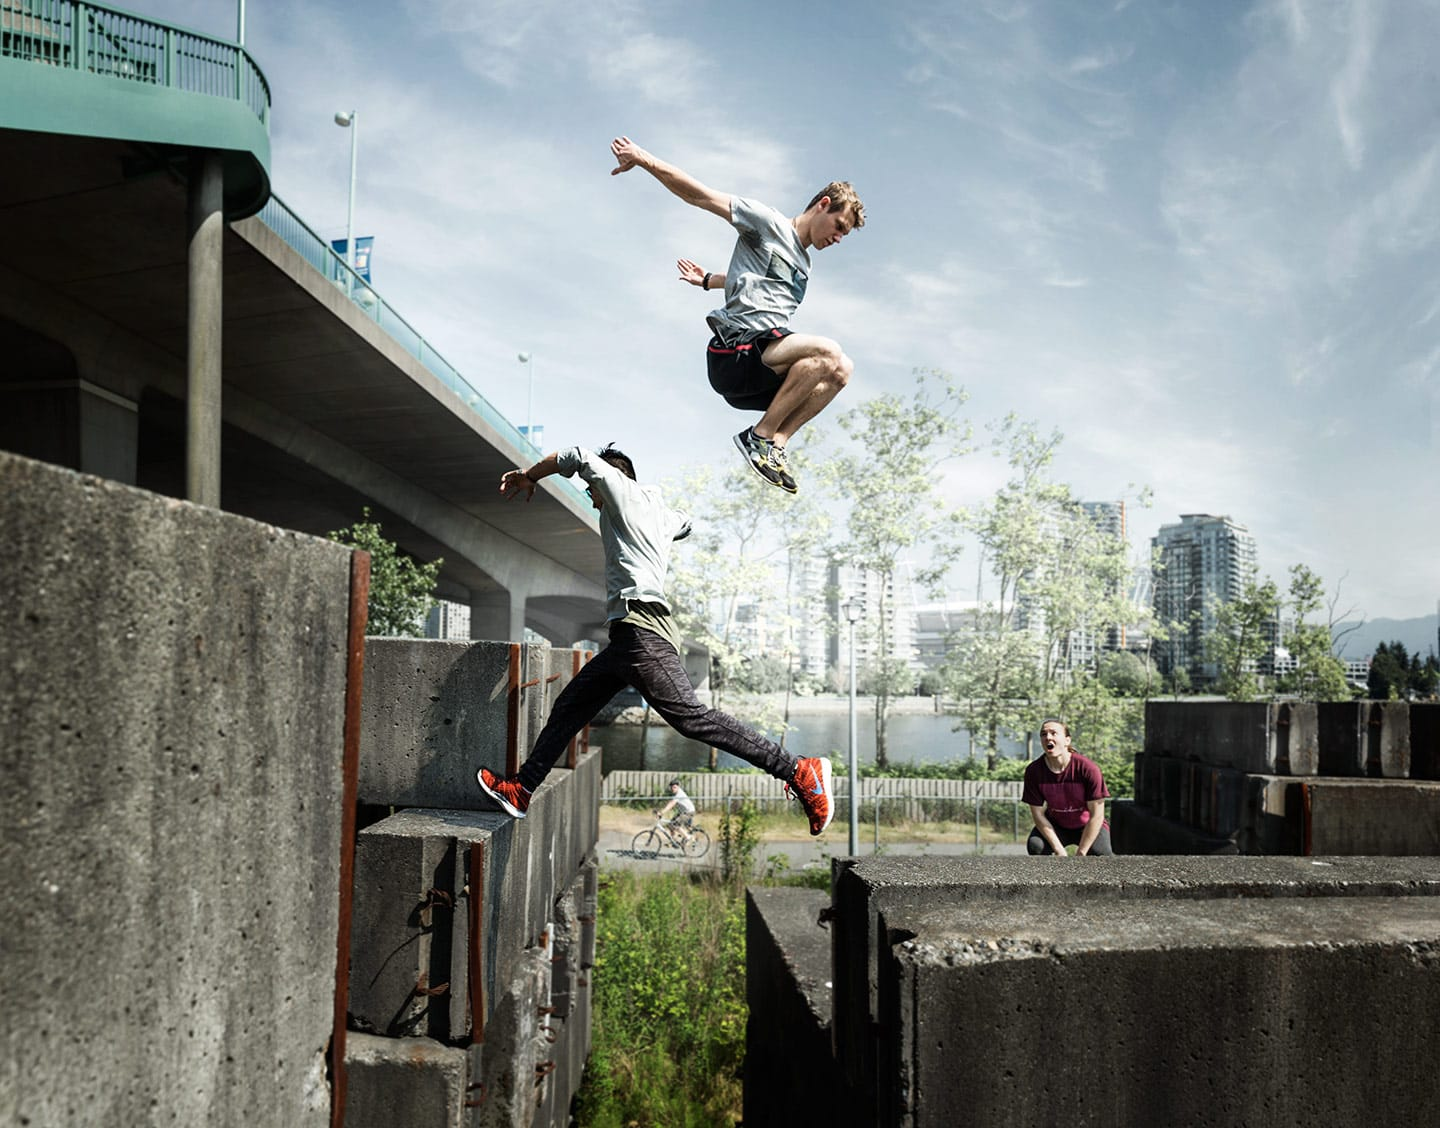 Two Athletes Parkour Double Gap Jump Concrete Walls Friend Watching